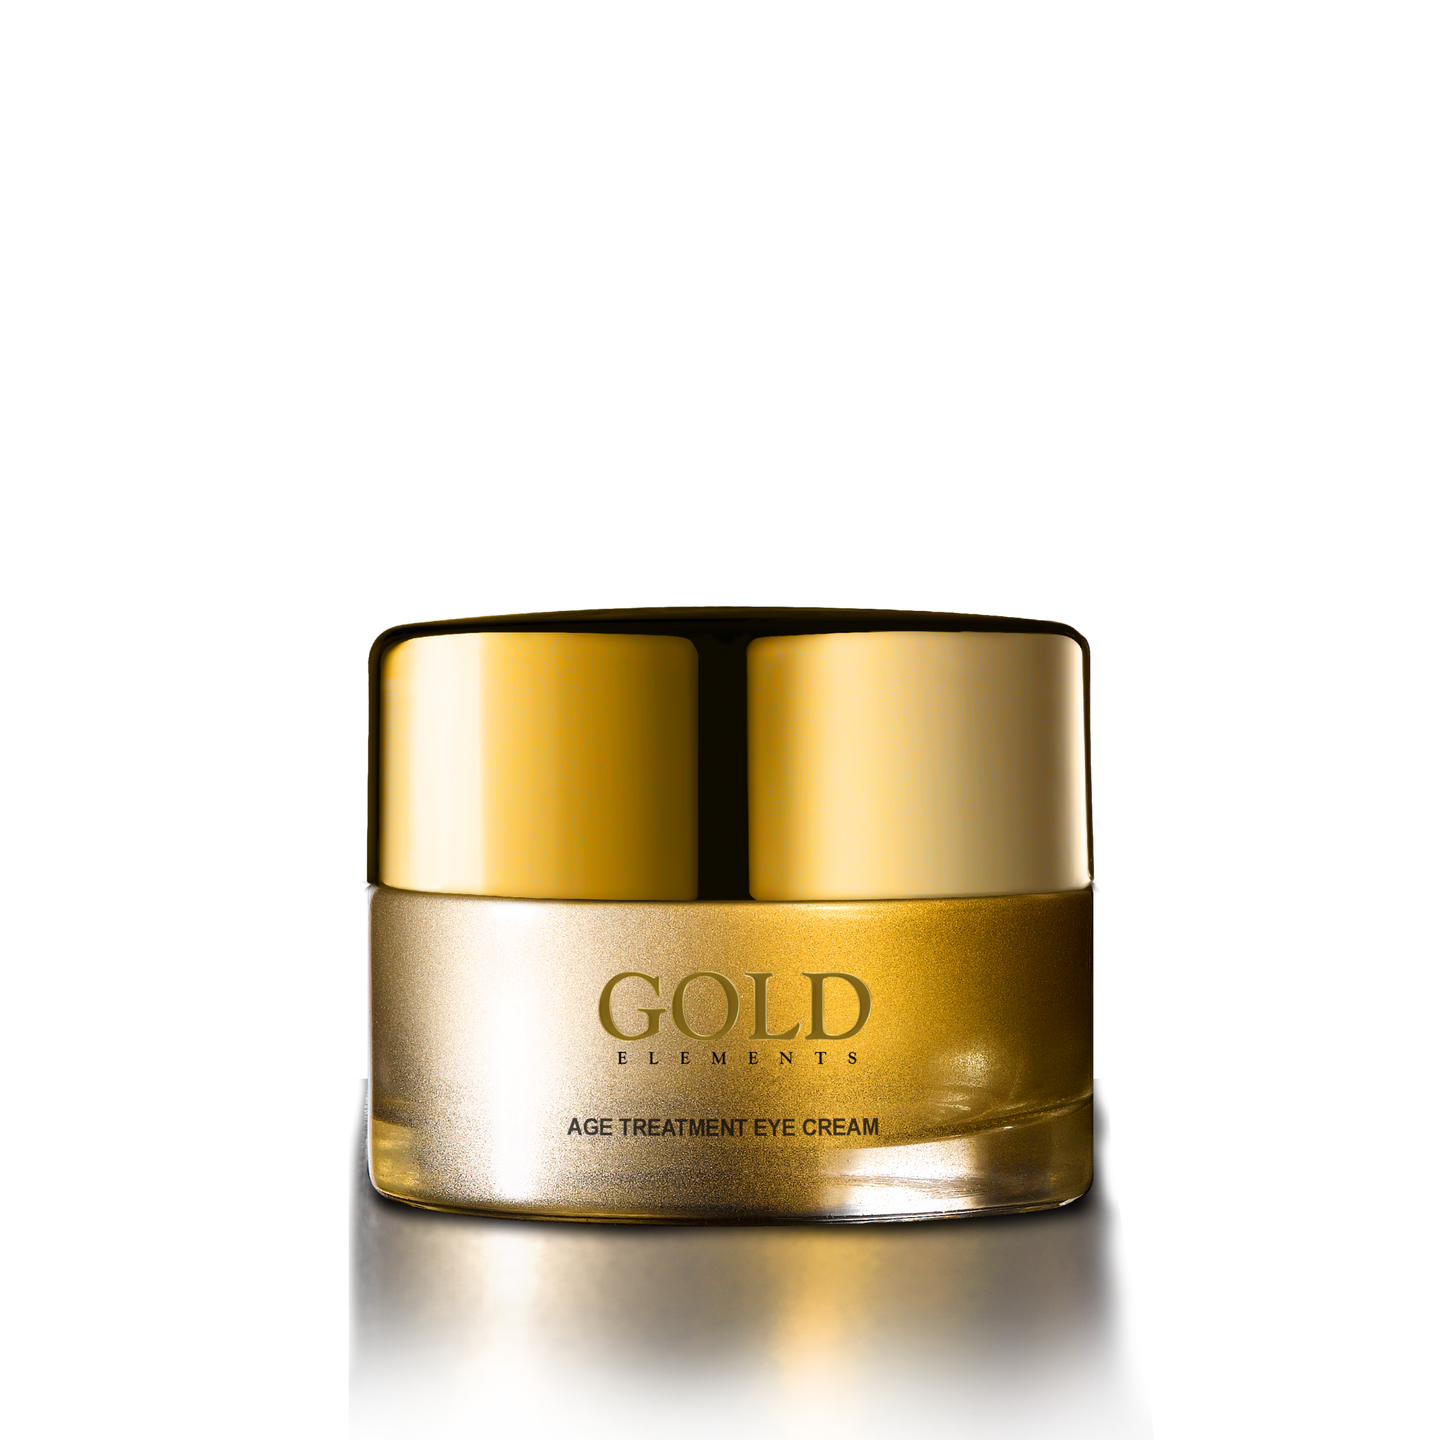 Gold Elements Age Treatment Eye Cream